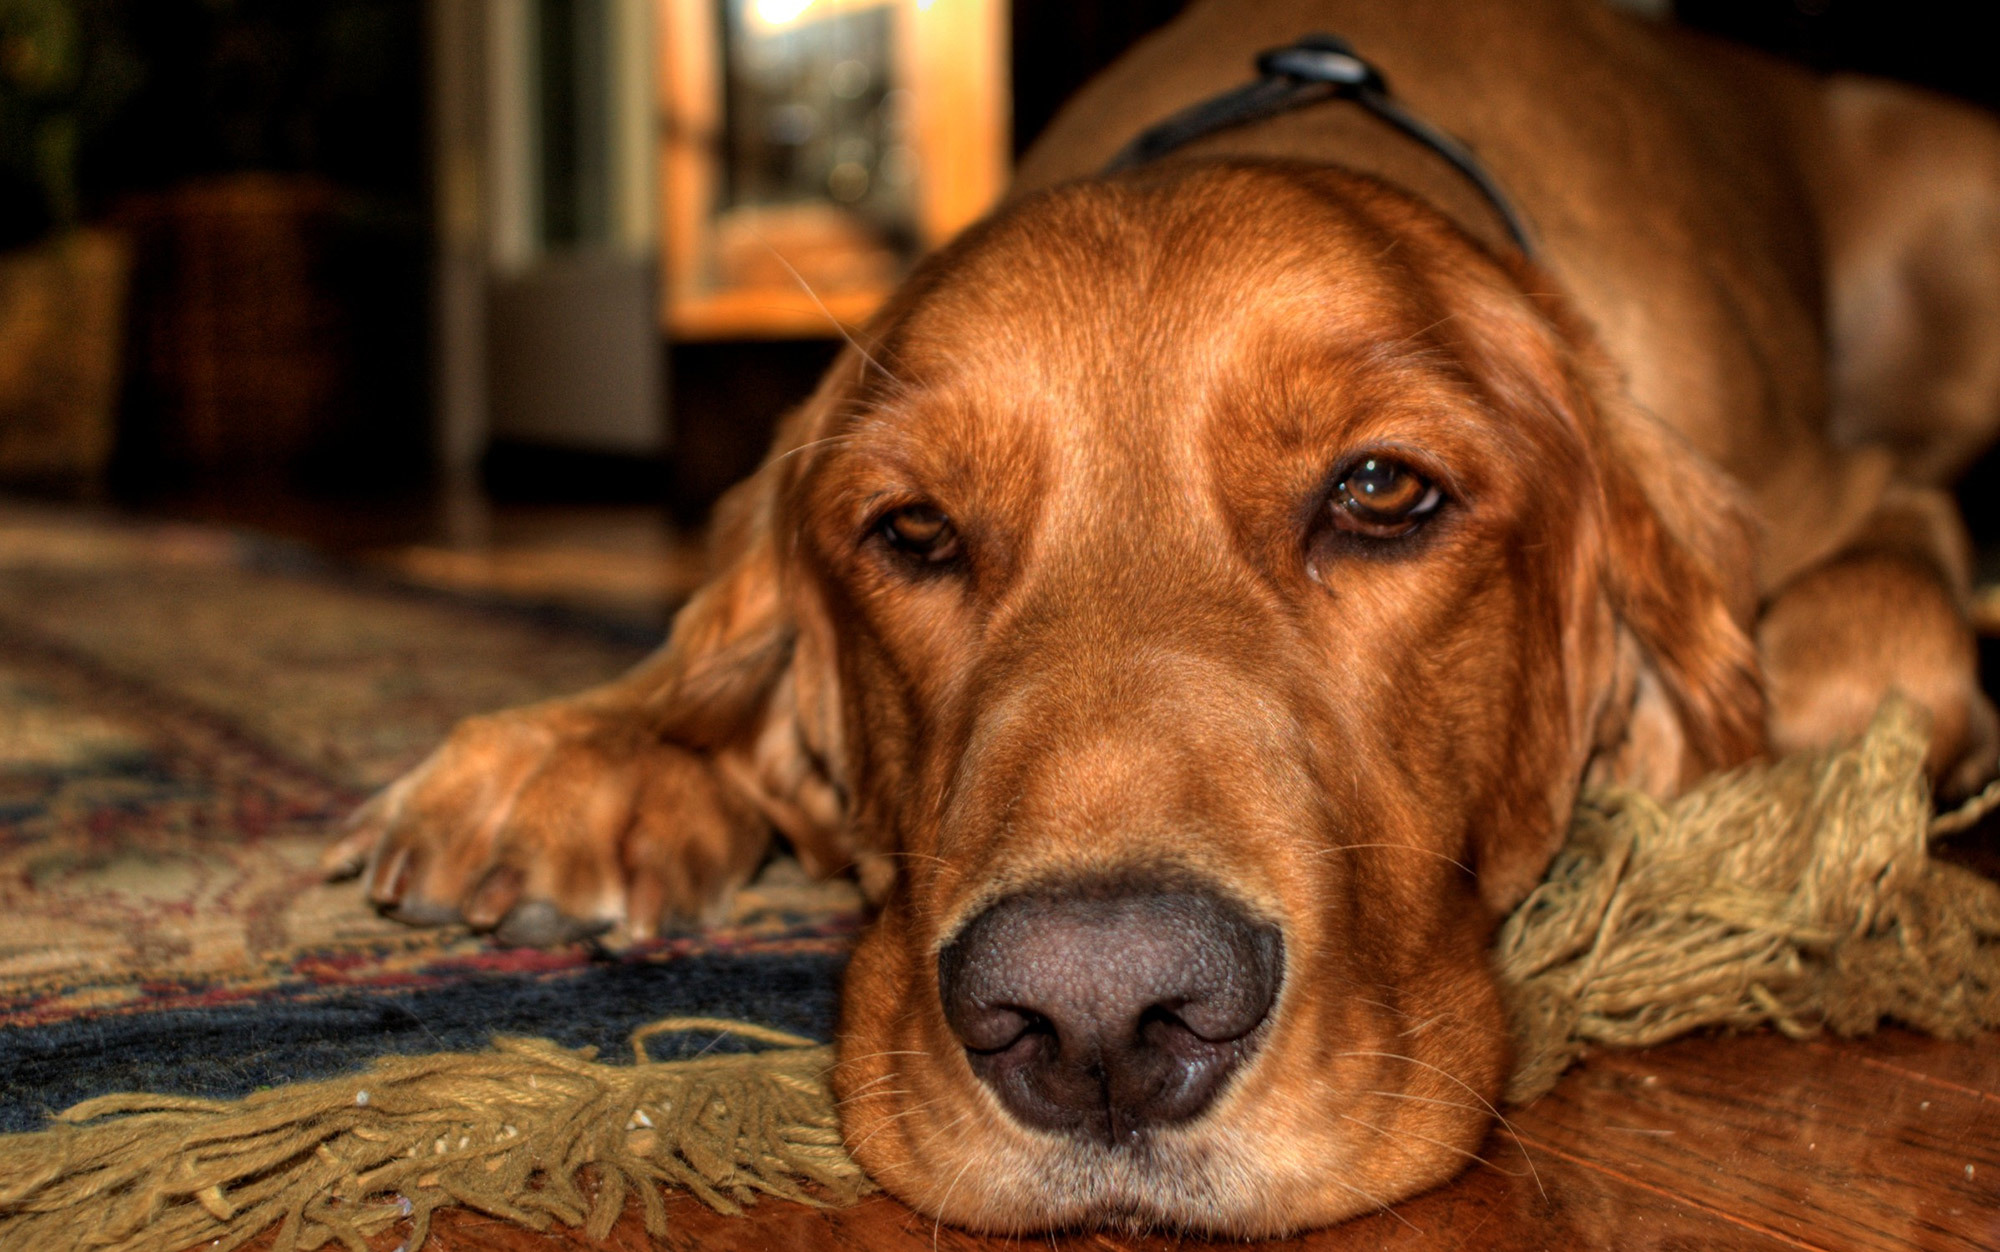 why keeping a pet is fundamentally unethical